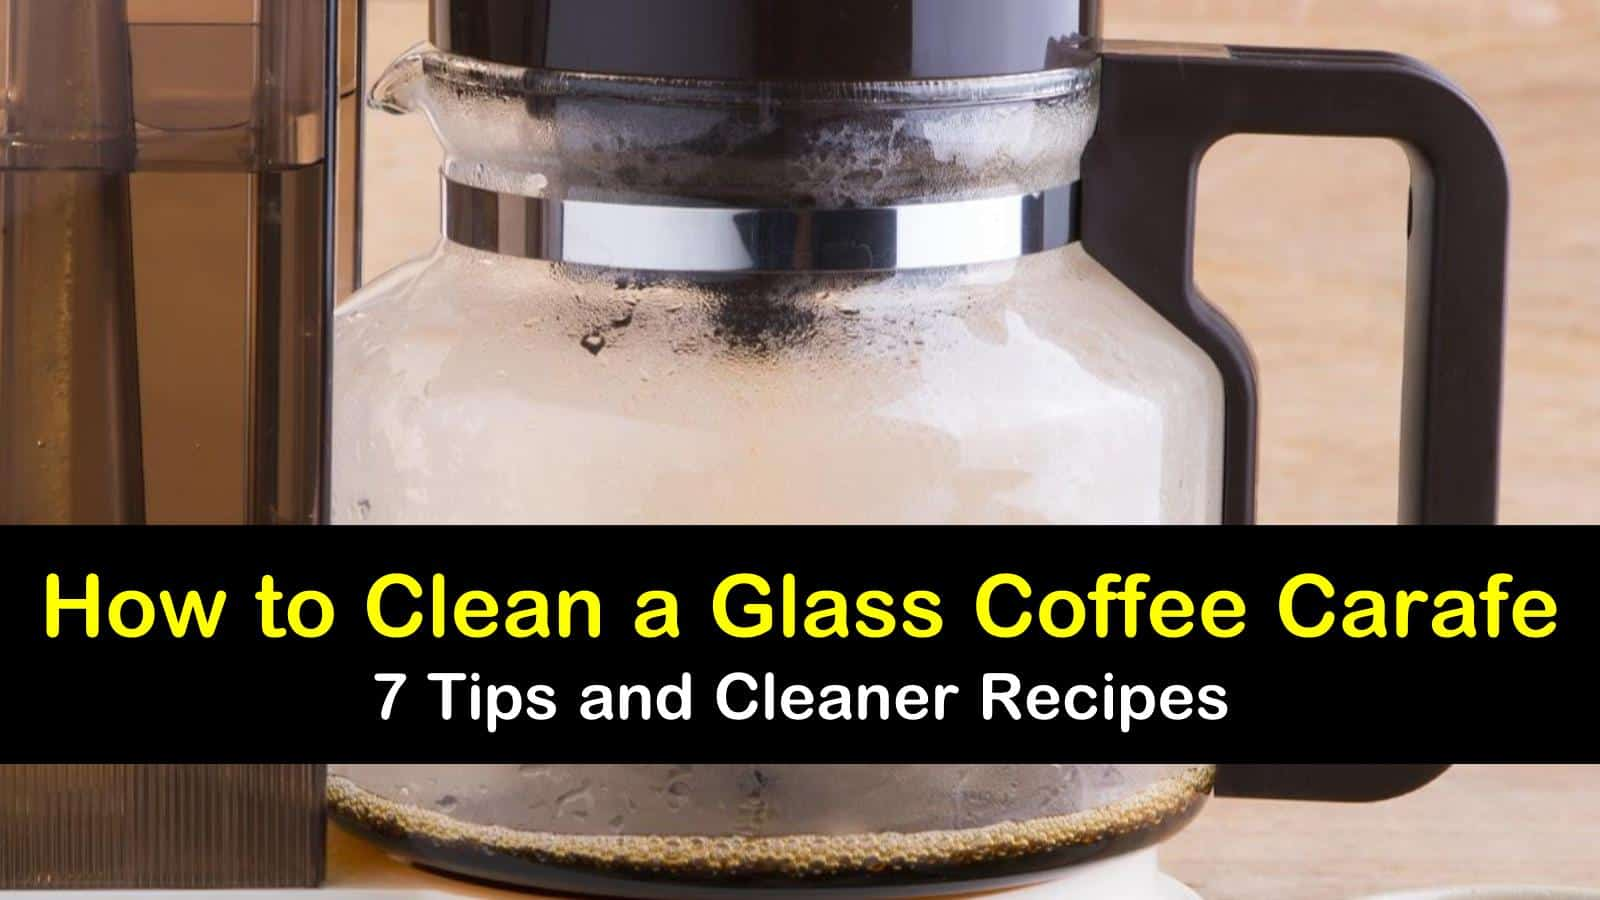 how to clean a glass coffee carafe titleimg1